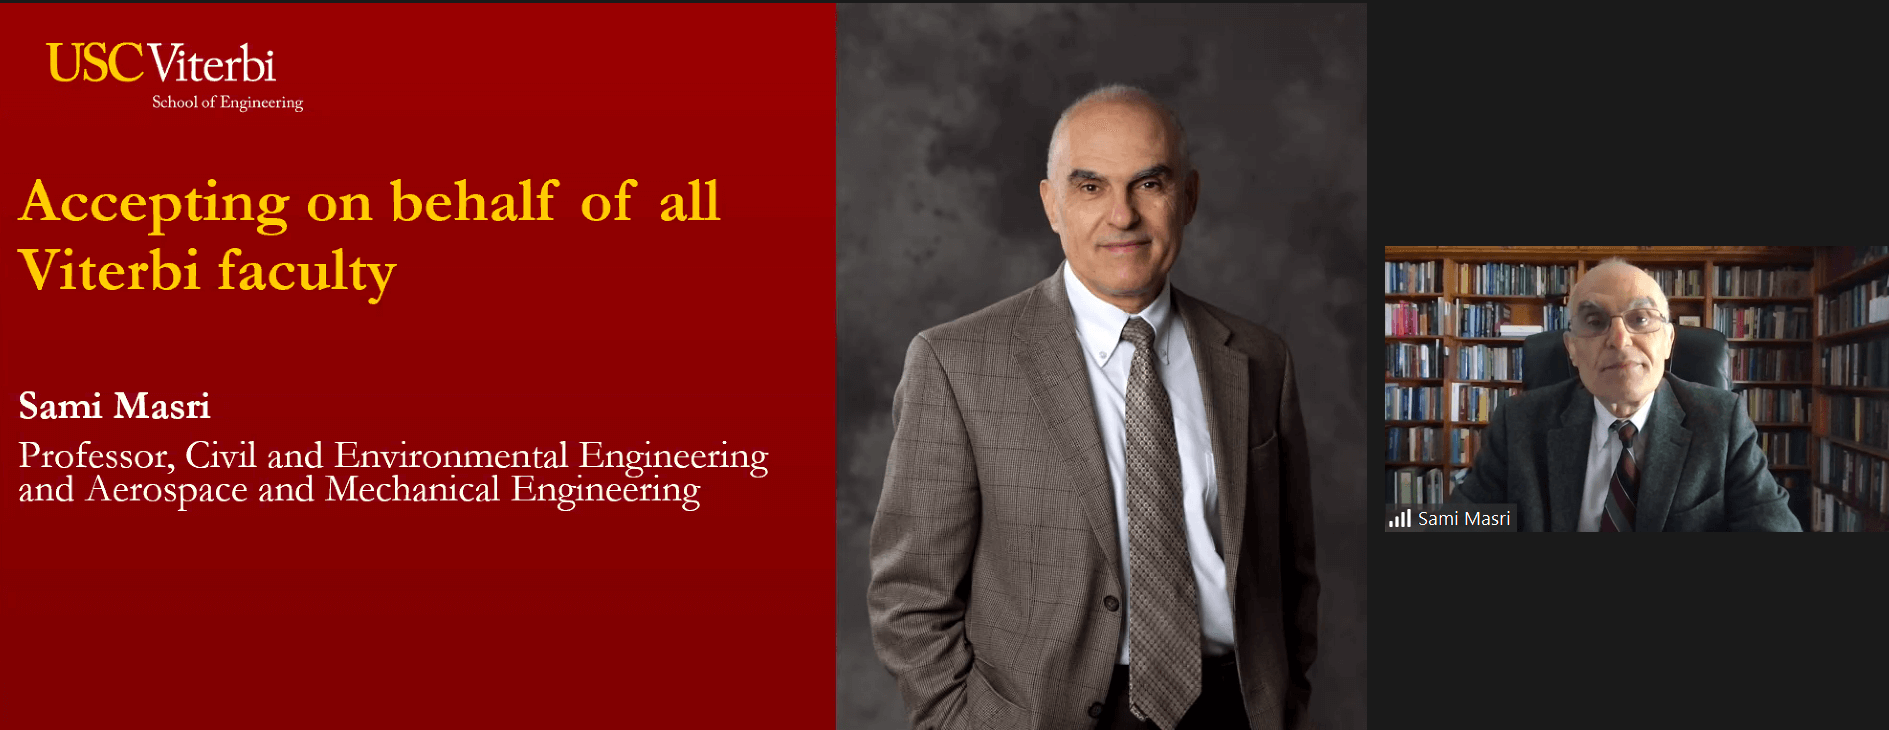 Sami Masri, Viterbi's longest-standing faculty member, accepts the John O'Brien Faculty Award for Service on behalf of the entire faculty.